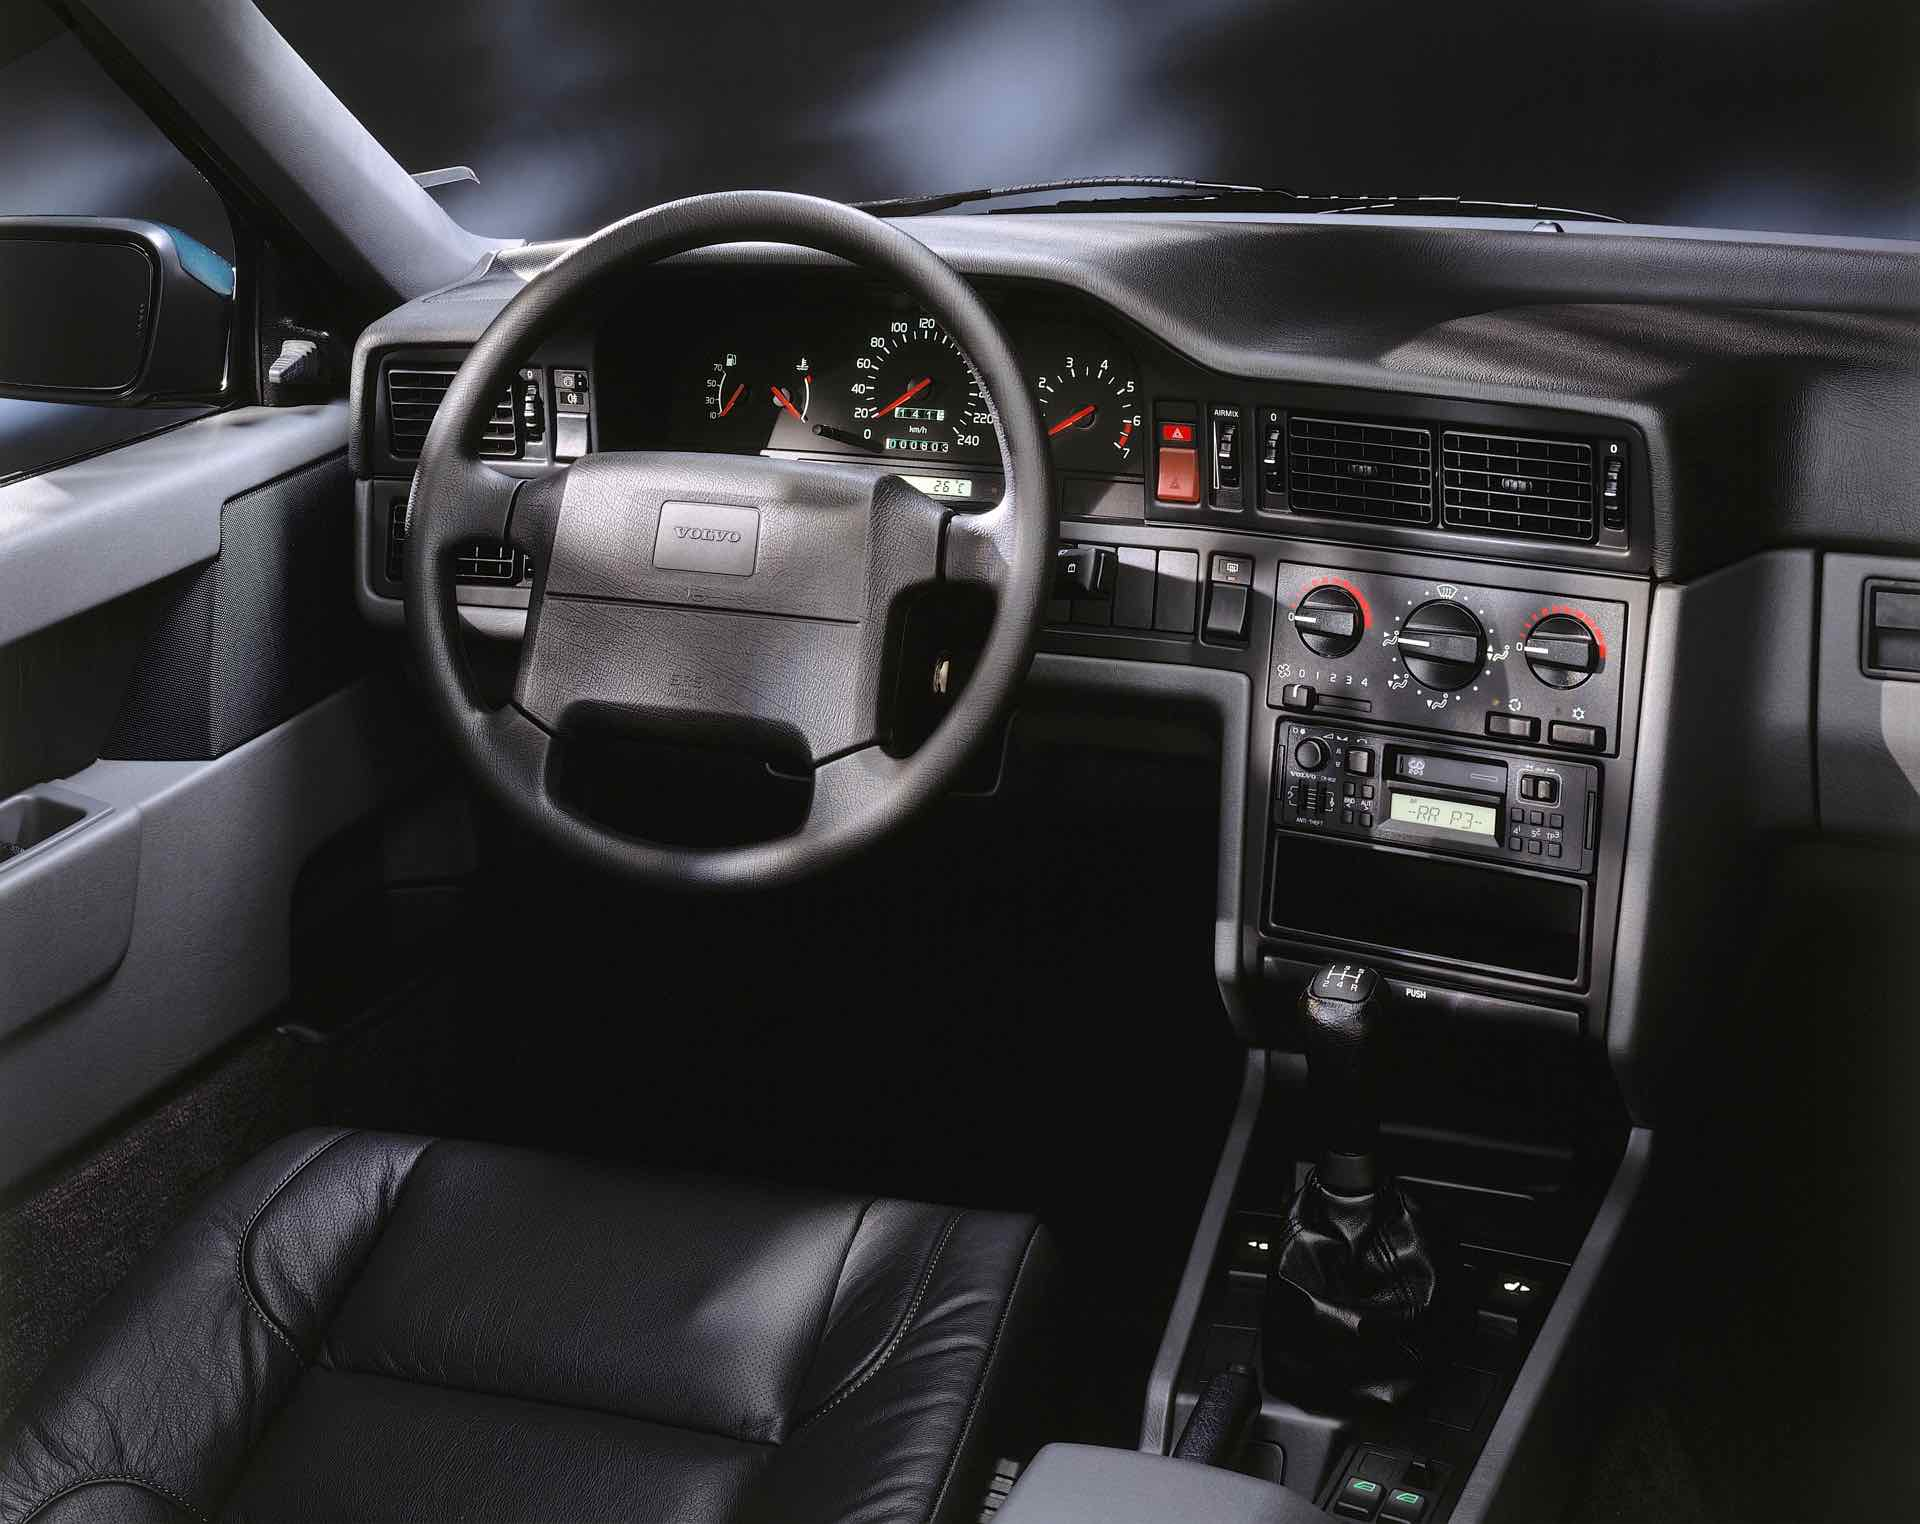 Volvo 850 Interior. This shows 850 dash, driver's seat, steering wheel and instrument cluster. And, this is a rare 850 5-speed manual.